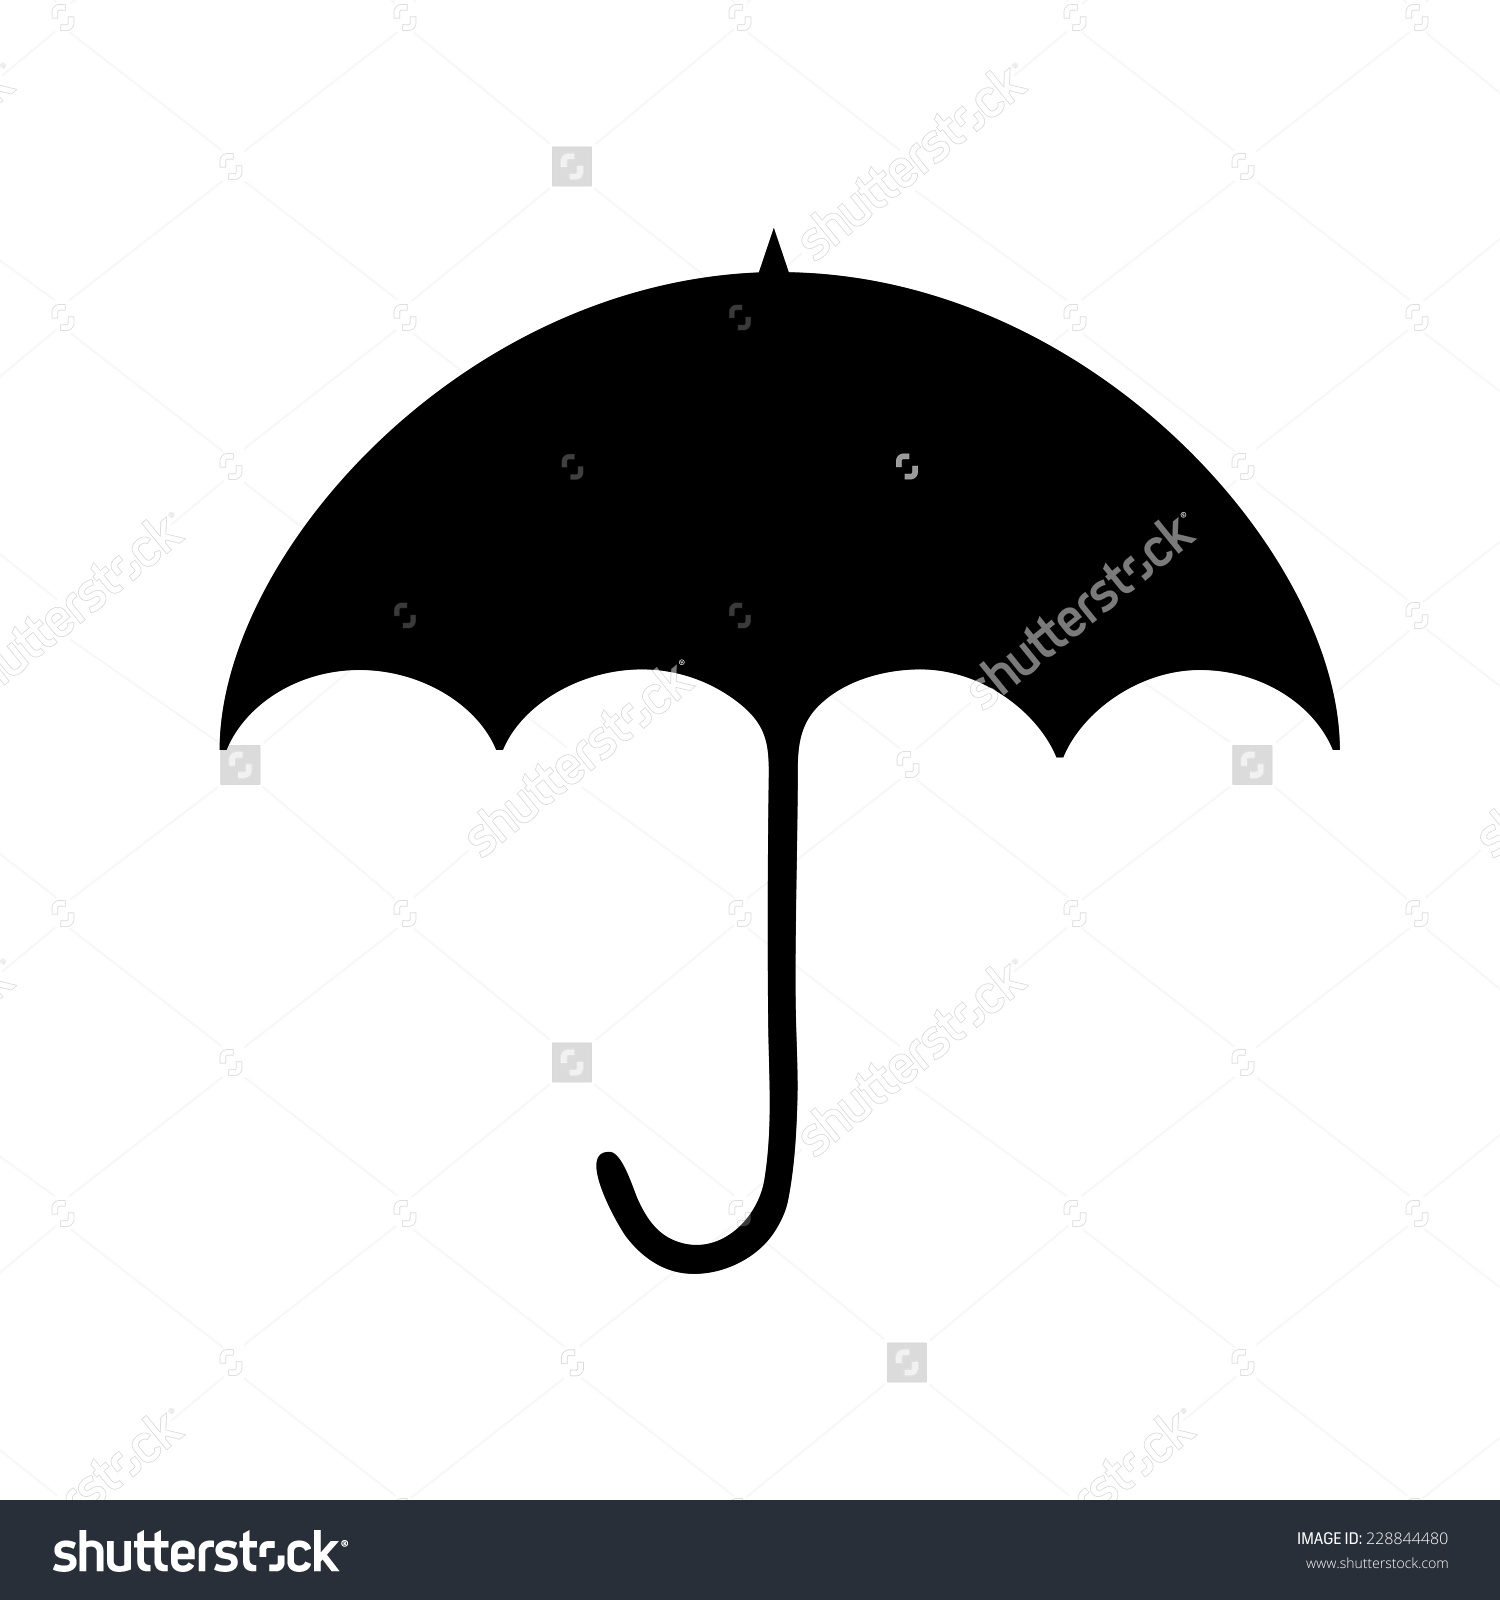 Black Umbrella Silhouette Clip Art Stock Vector 228844480.